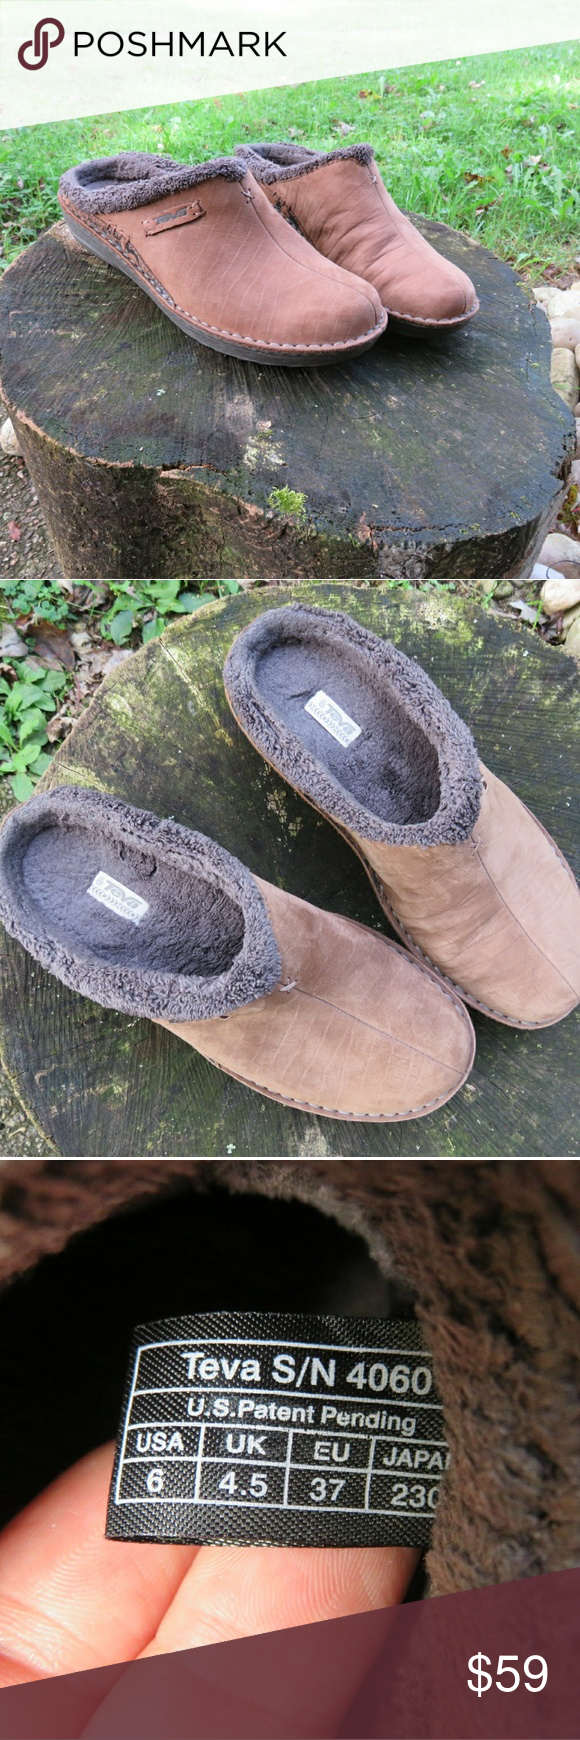 c01aad20e1d9 Teva Fall Sherpa Fleece Leather Comfort Clog Mule Comfort and style you ve  come to